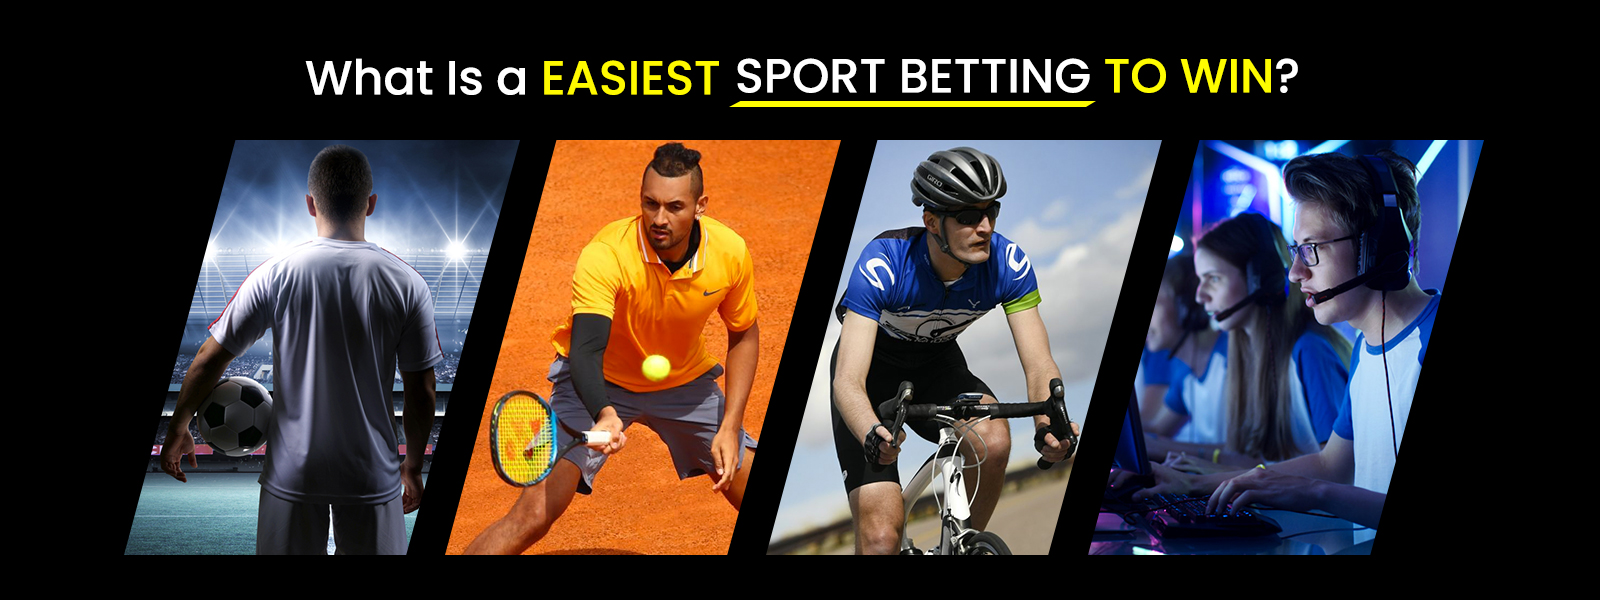 What Is A Easiest Sport Betting To Win?